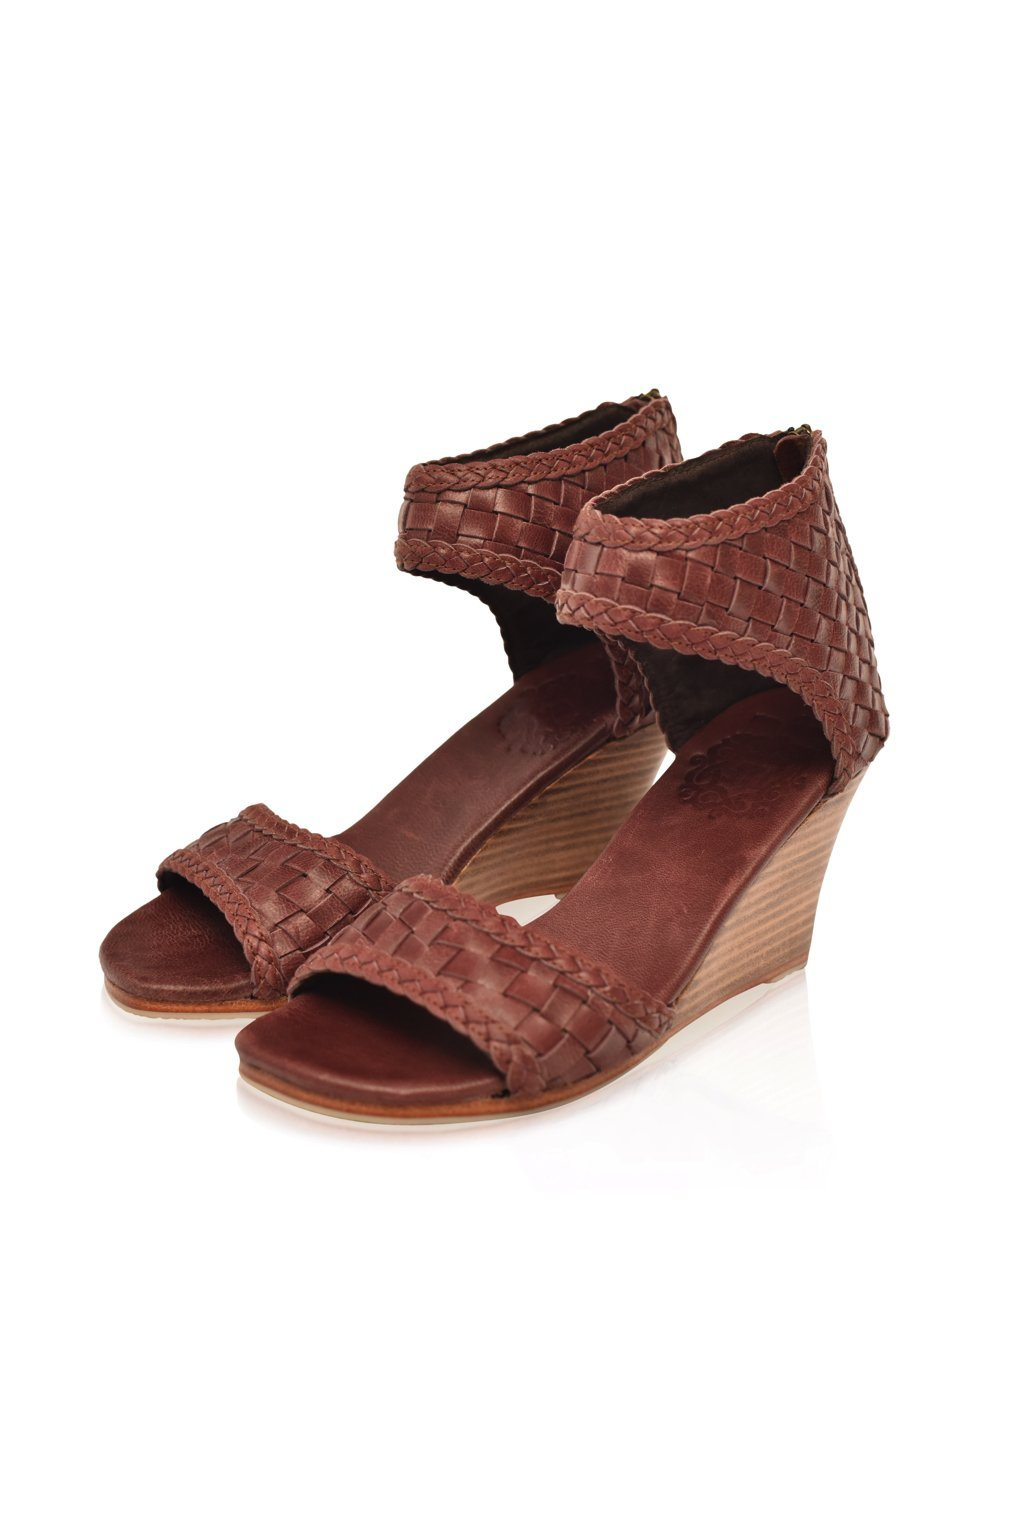 Leather Shoes - Athena Leather Wedges